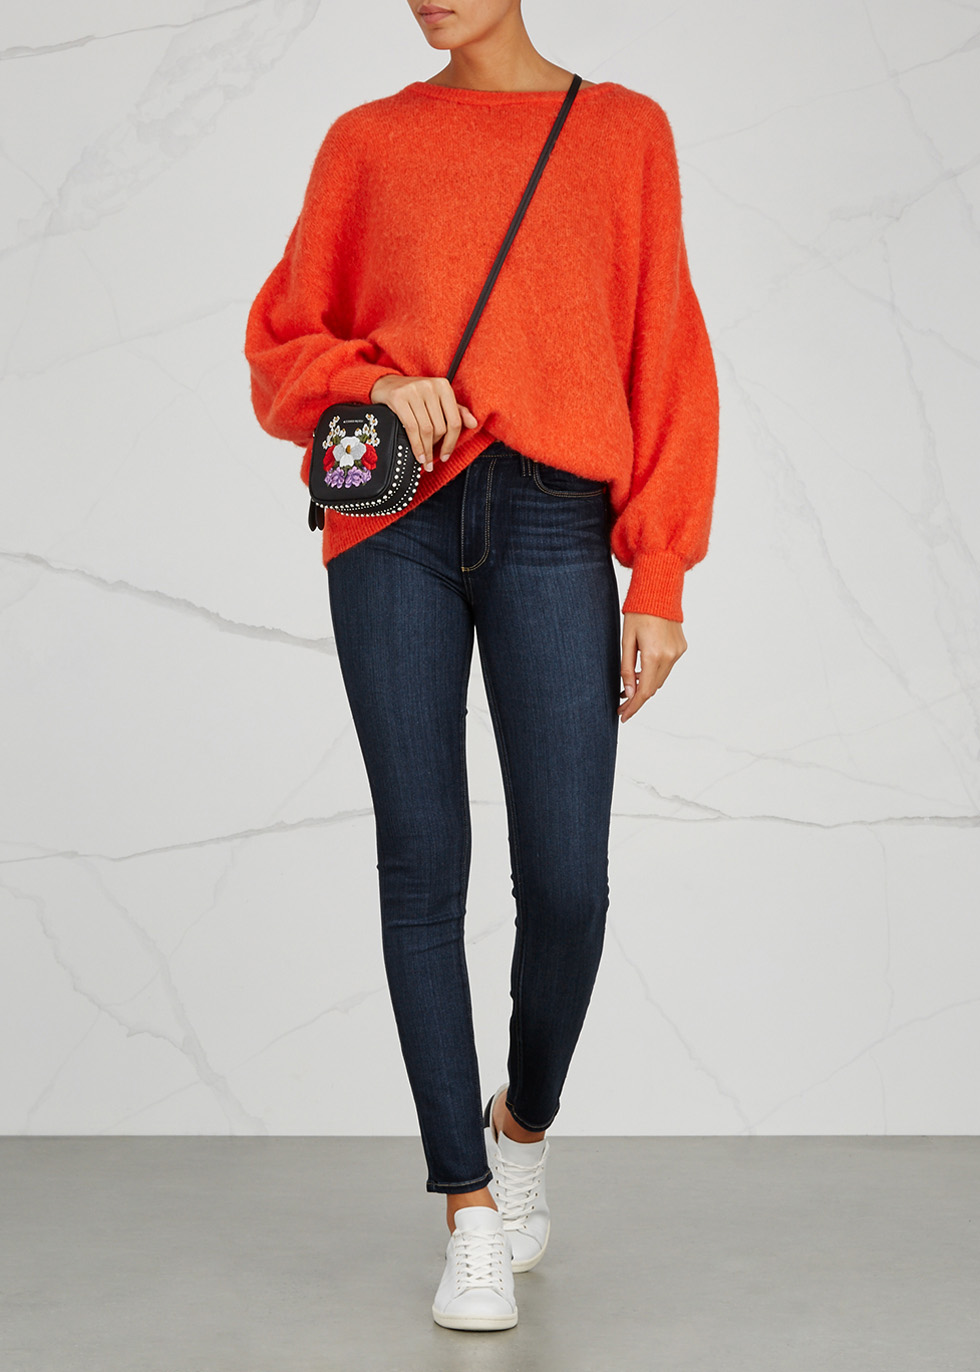 Hoxton high-rise skinny jeans - Paige